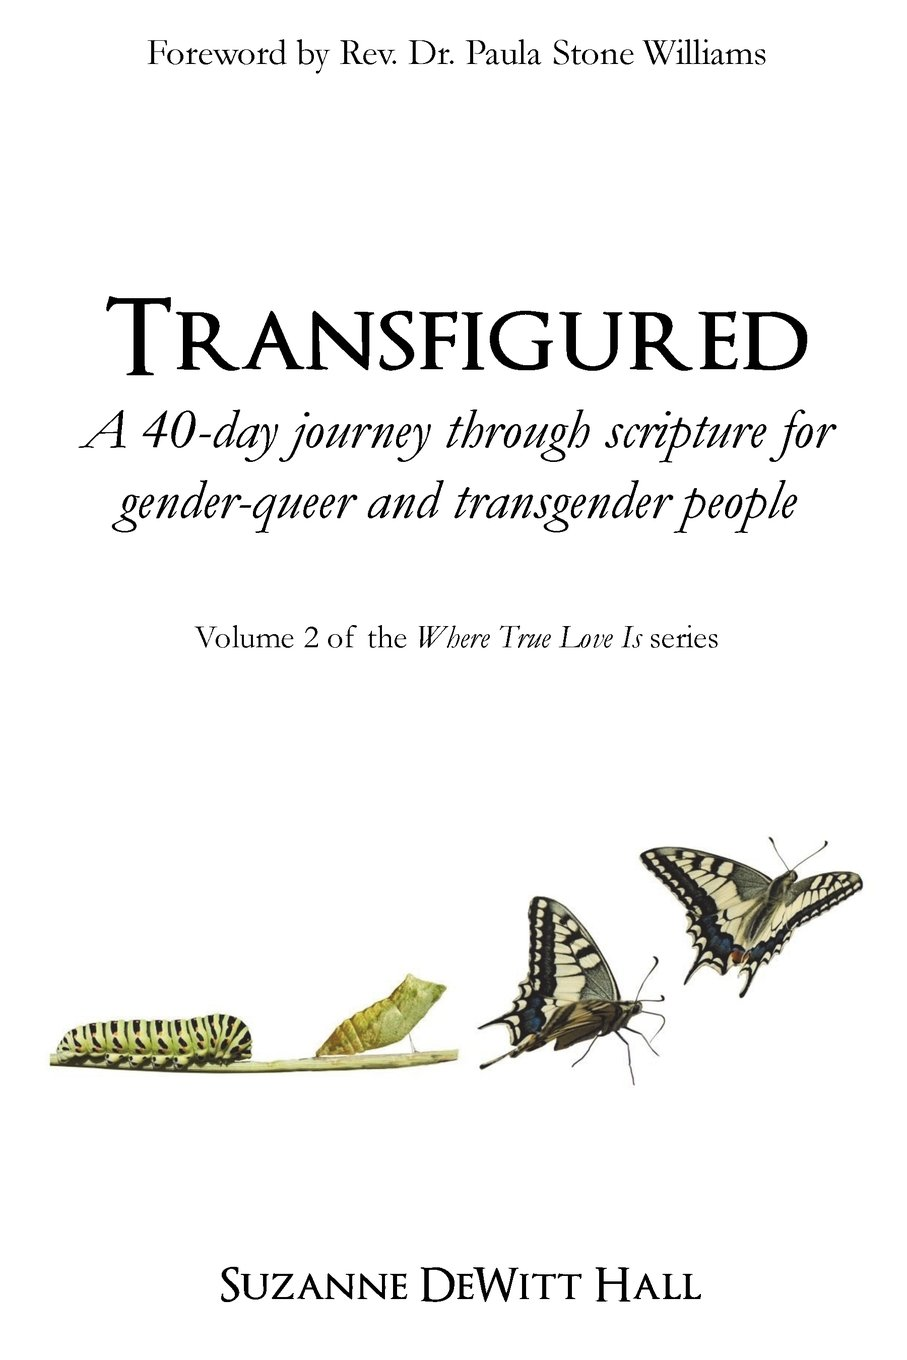 Transfigured: A 40-day journey through scripture for gender-queer and transgender people (Where True Love Is) (Volume 2) PDF